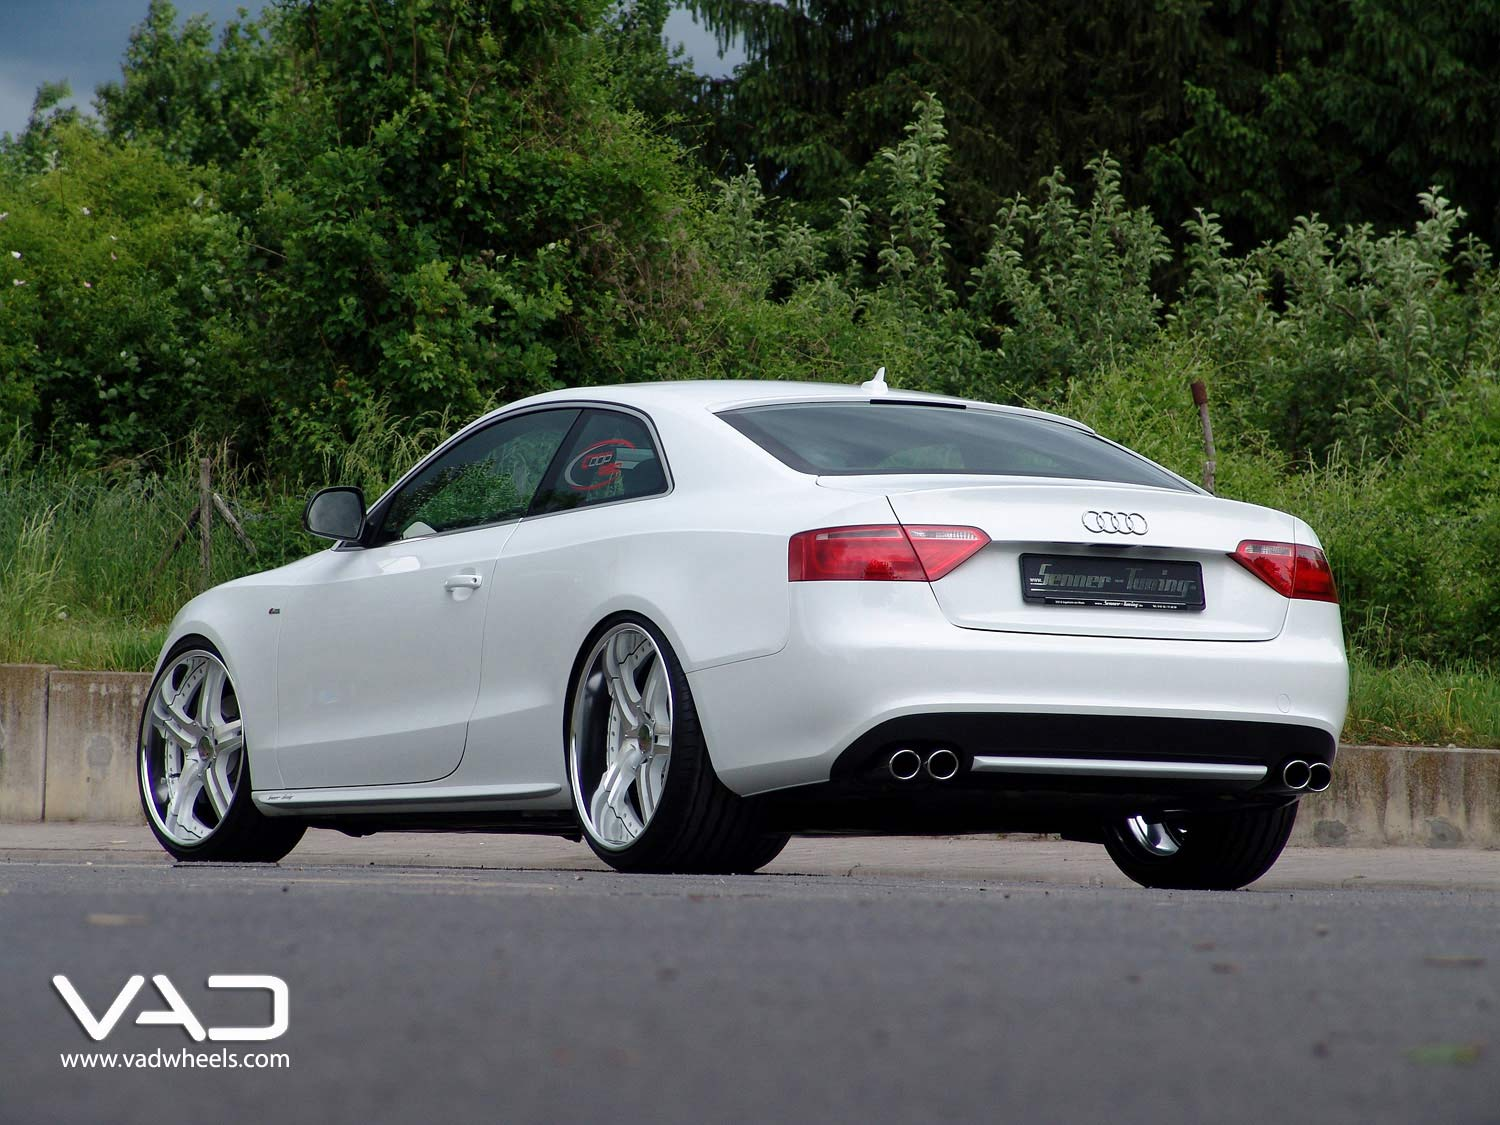 Audi-A5-Fitted-With-21'-Altstadt-S250-Rear-Shot